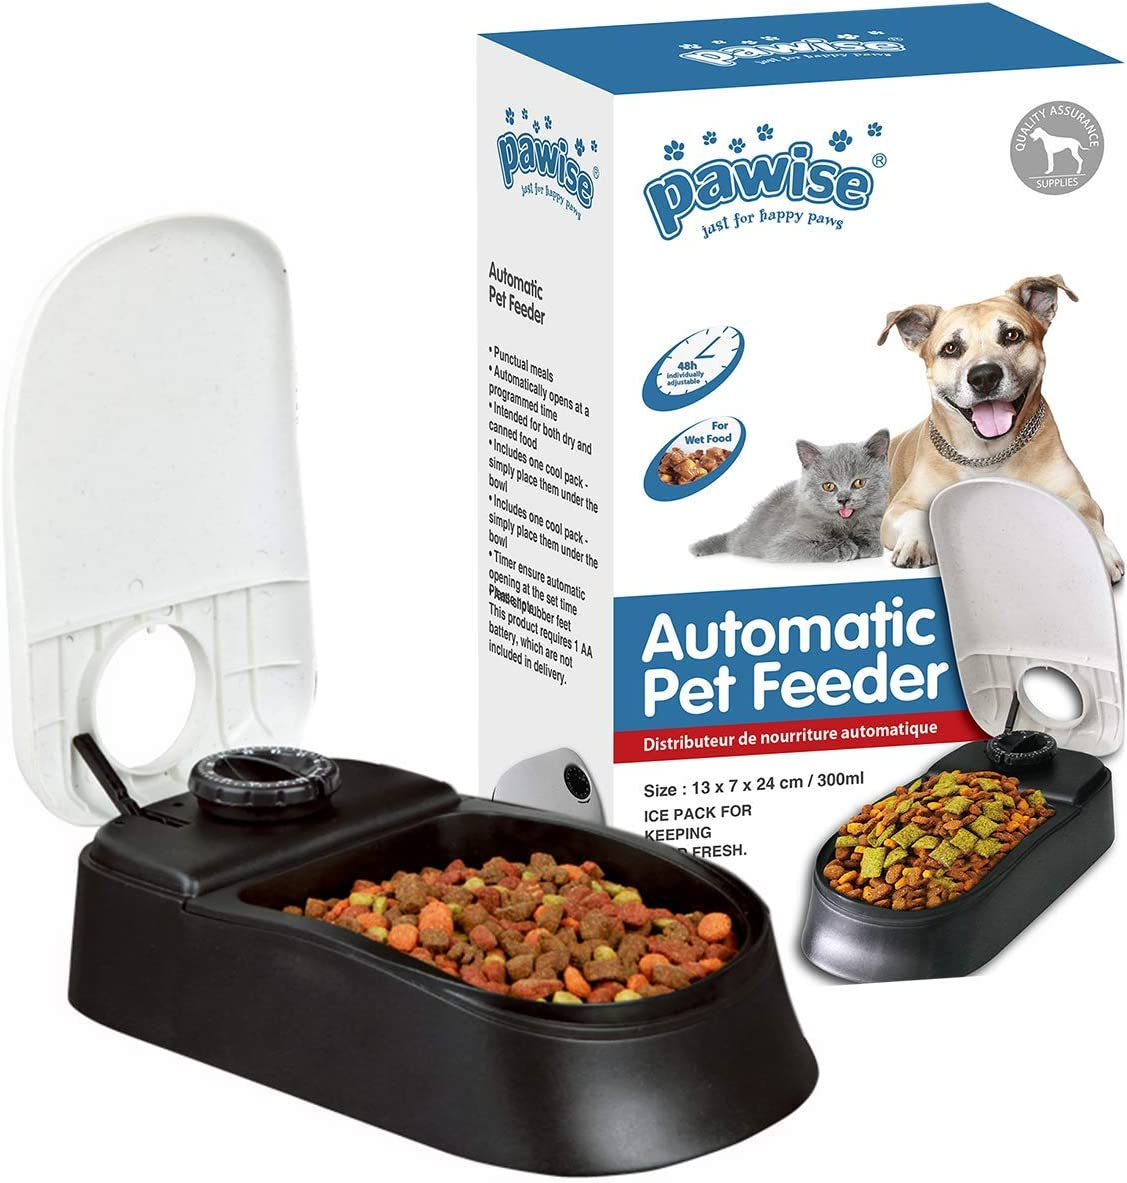 PAWISE Automatic Pet Feeder for Dogs and Cats, 1.5 Cups Food Dispenser Station with 48-Hour Timer - Single